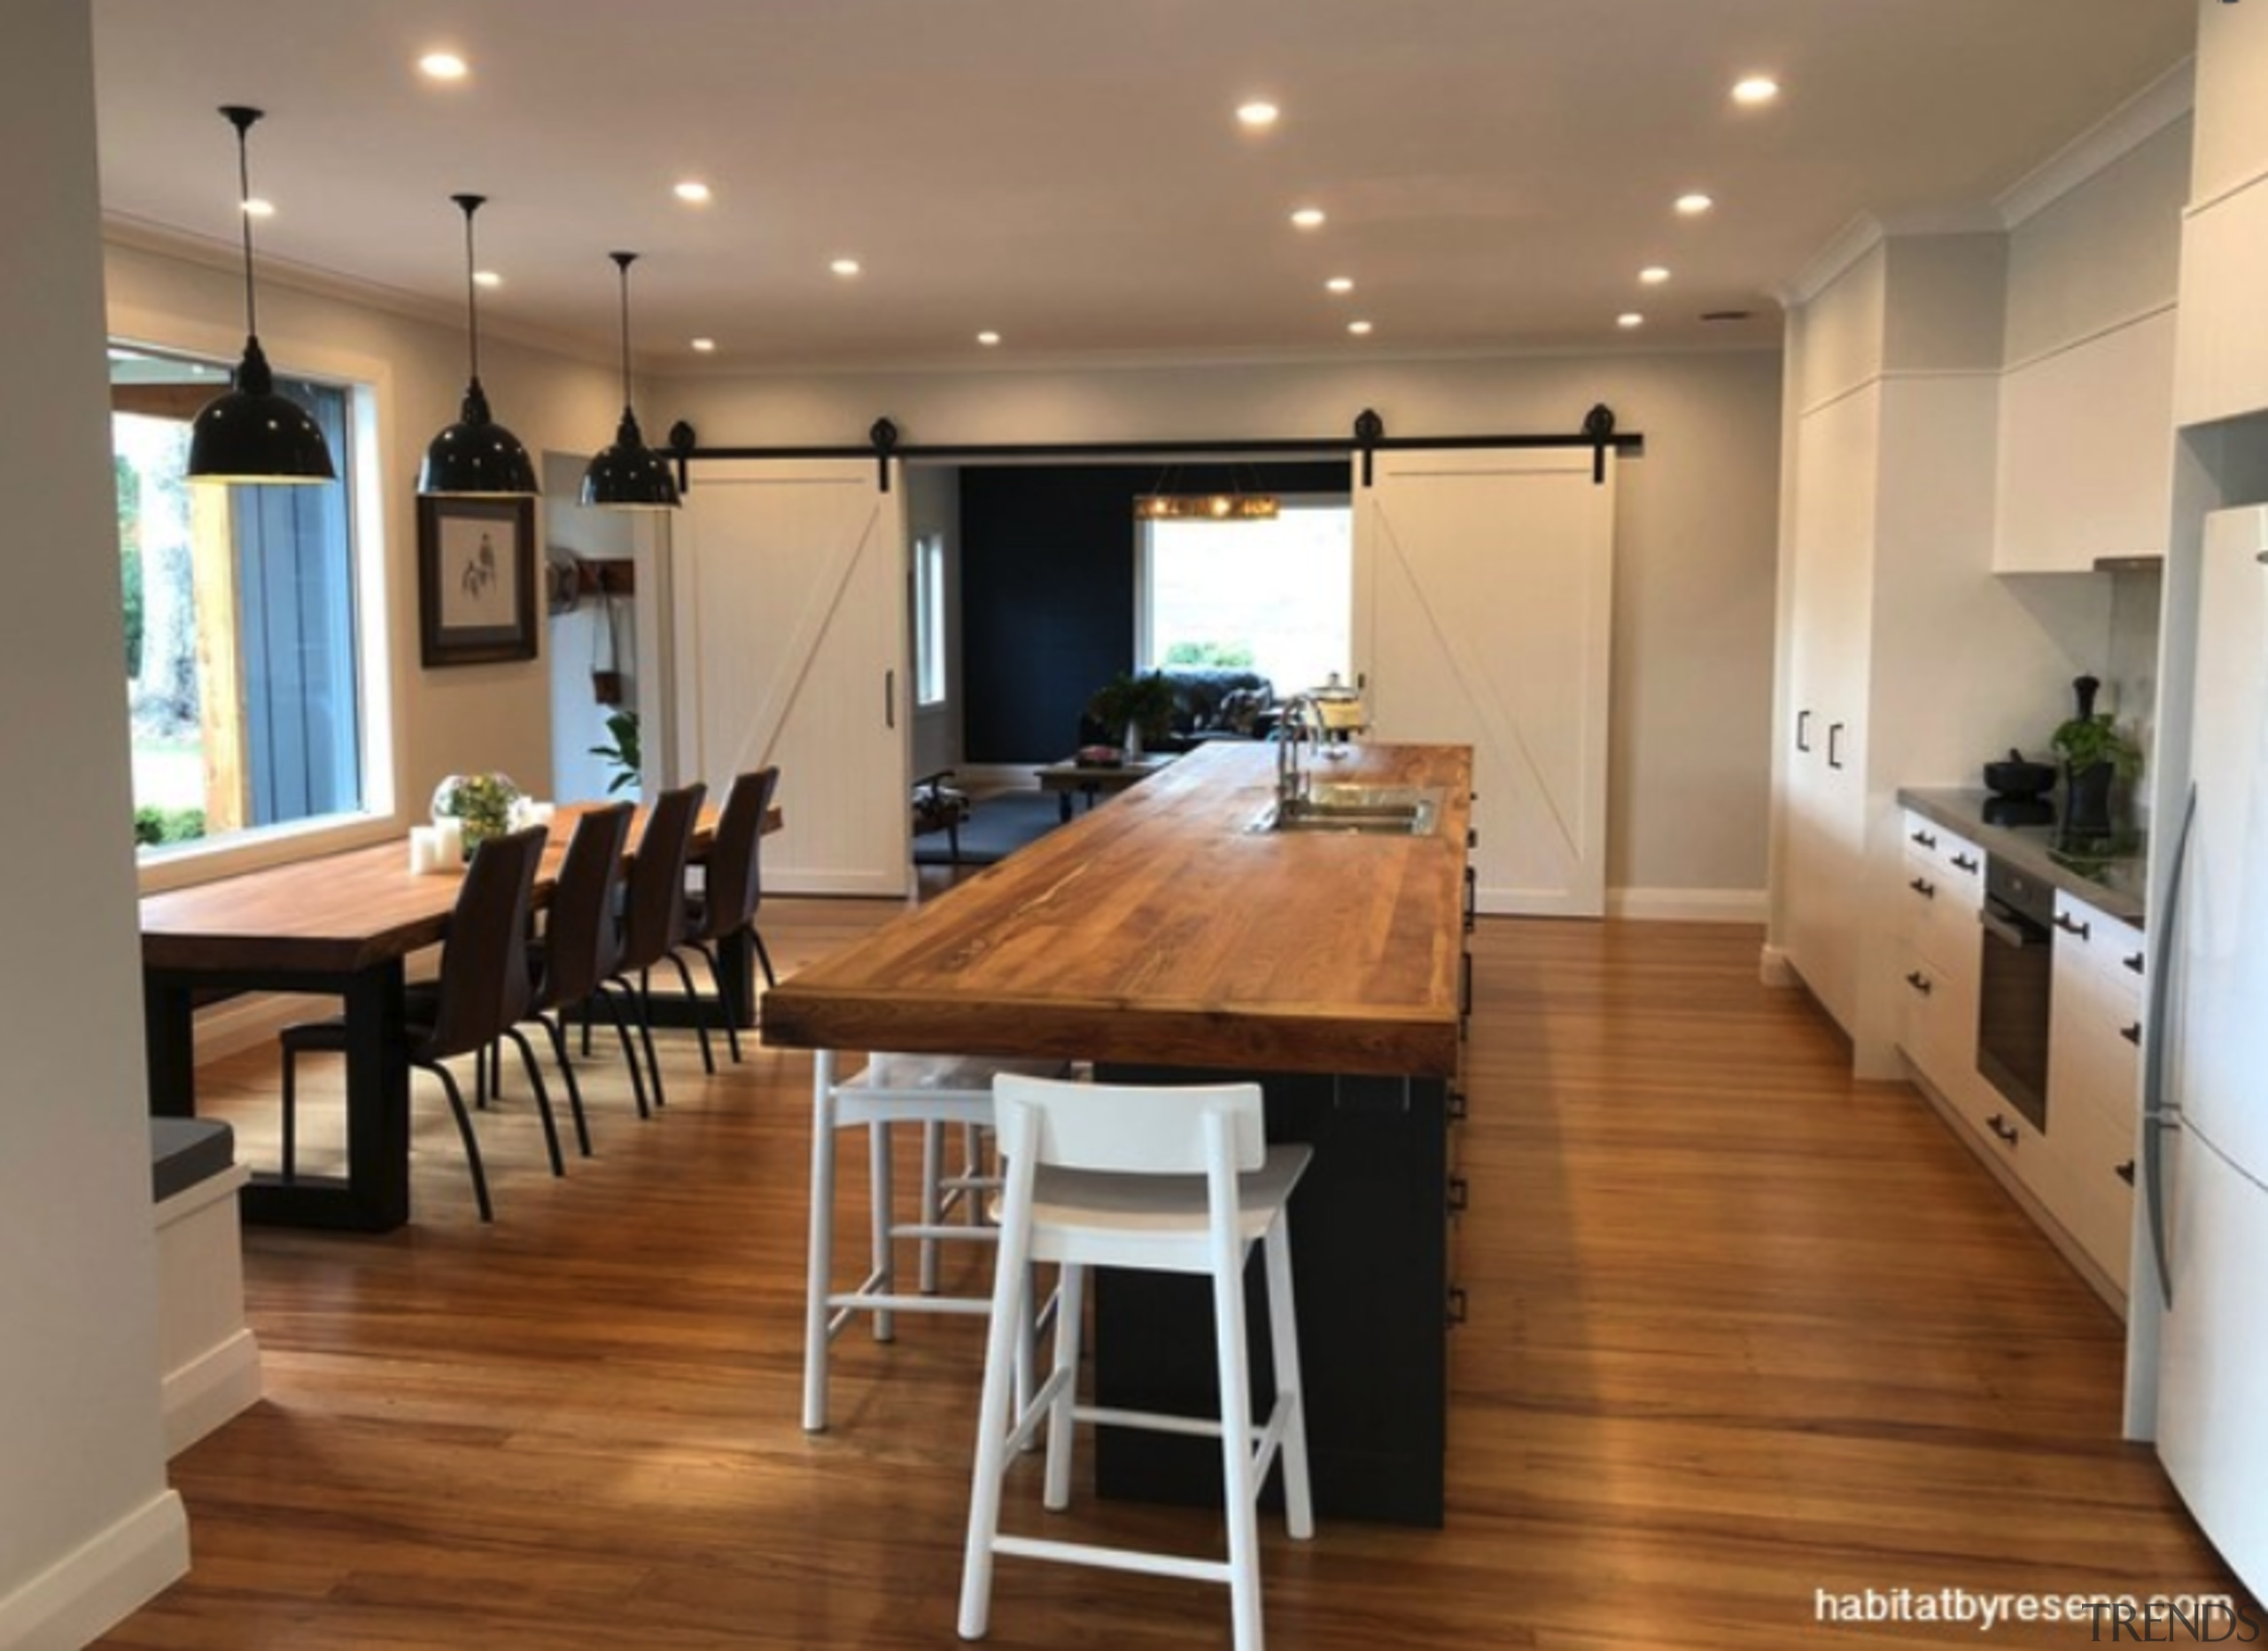 Kitchen and Dining Area - building | cabinetry building, cabinetry, ceiling, countertop, dining room, floor, flooring, furniture, hardwood, home, house, interior design, kitchen, laminate flooring, light fixture, lighting, property, real estate, room, table, wood, wood flooring, brown